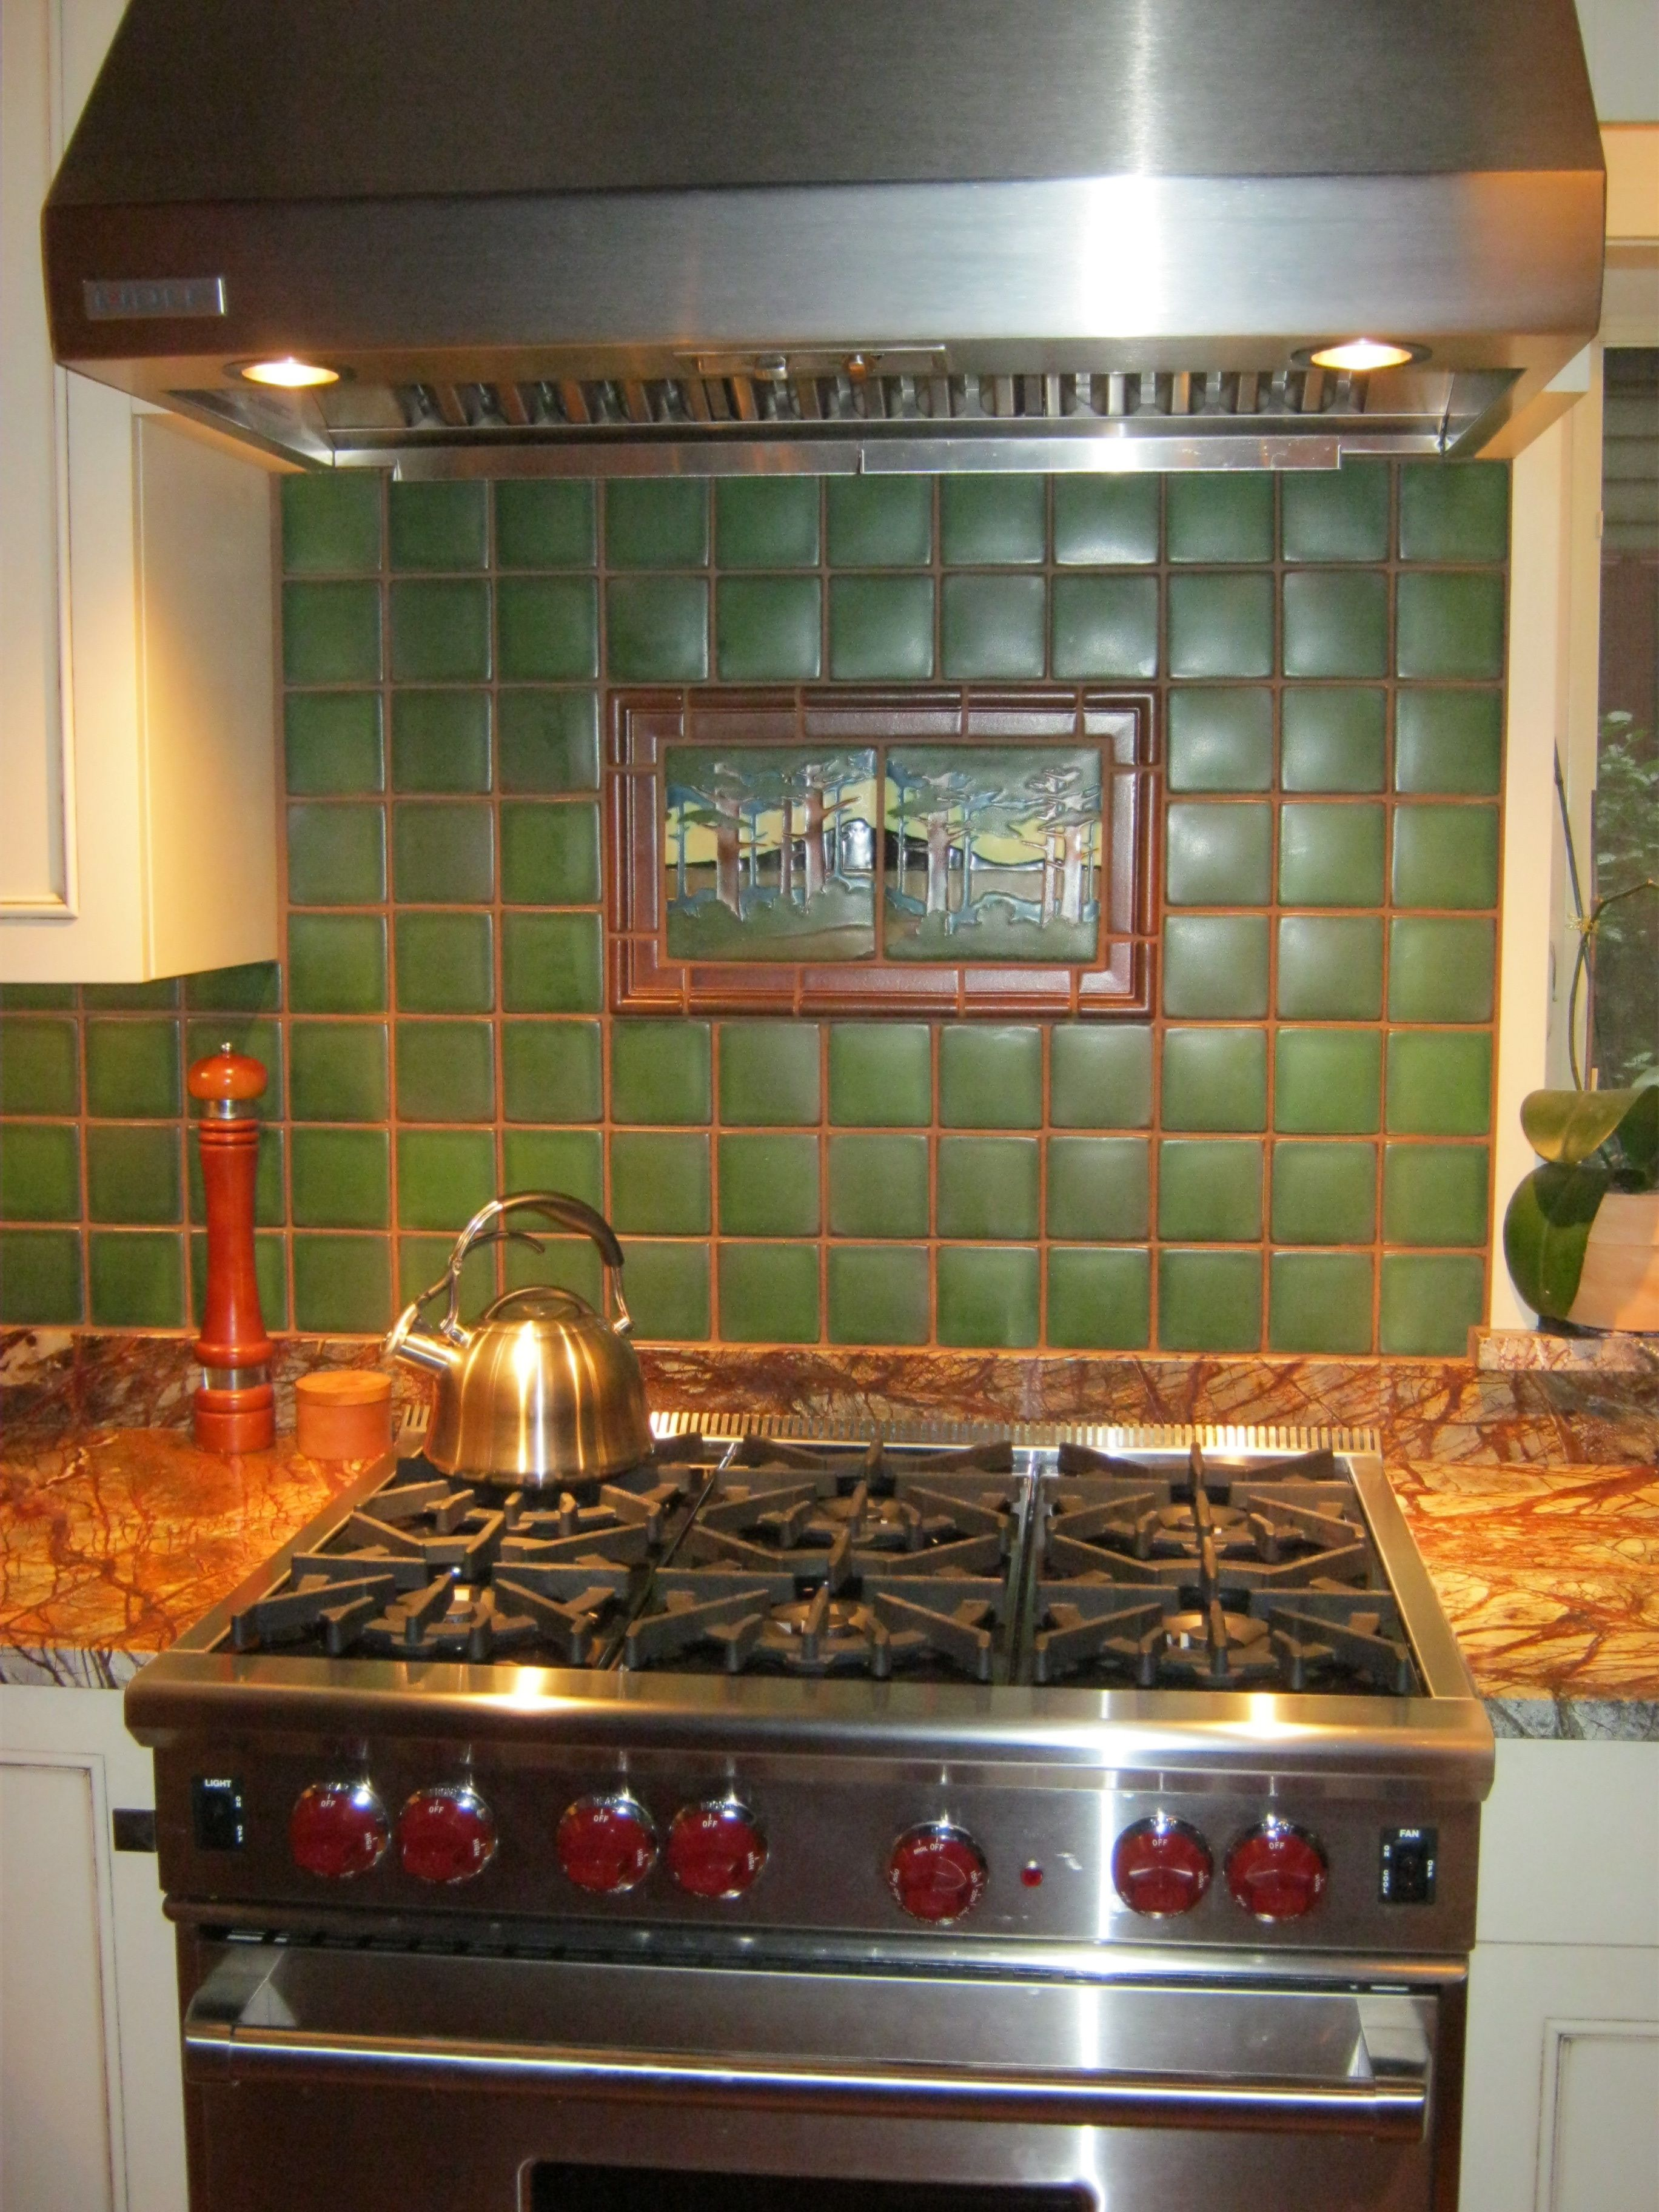 Retro Kitchen Backsplash Motawi Backsplash Tile At Ceramiche Tile And Stone For